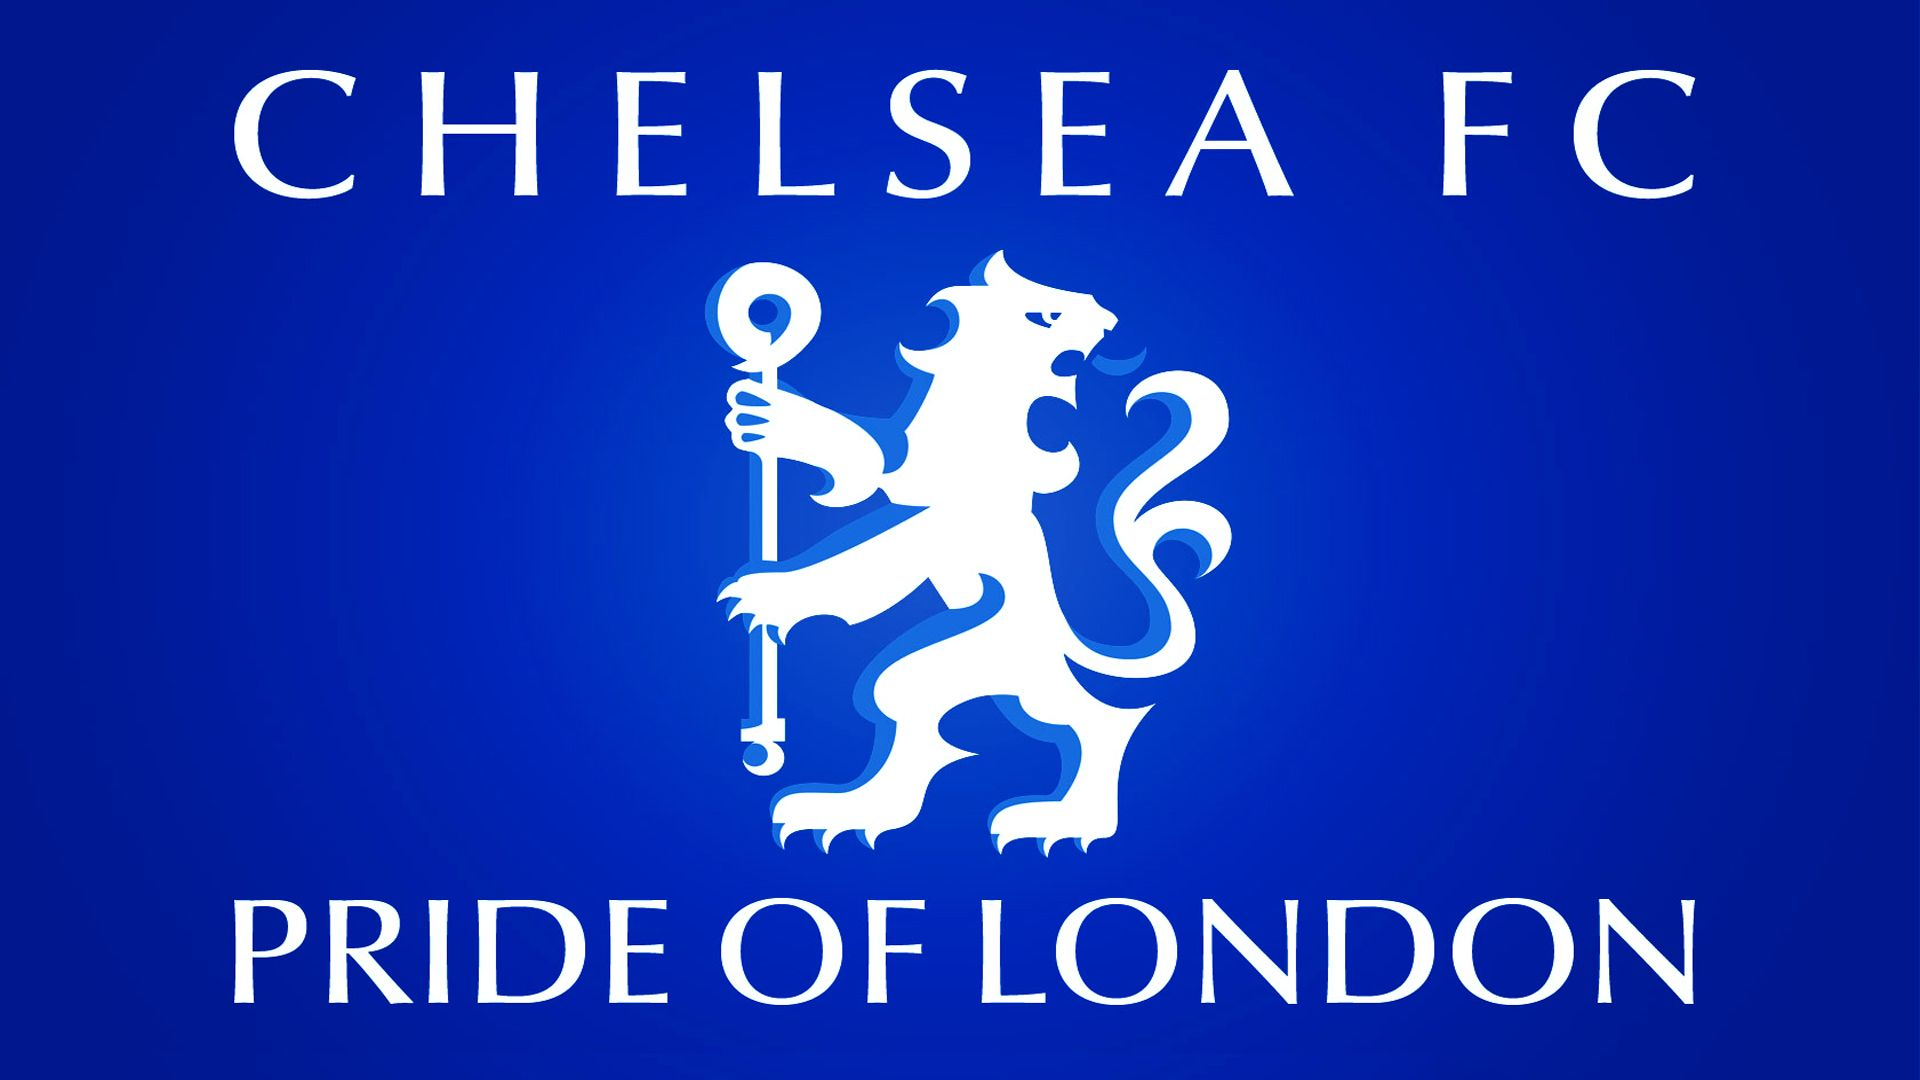 Free Chelsea HD Wallpaper Backgrounds